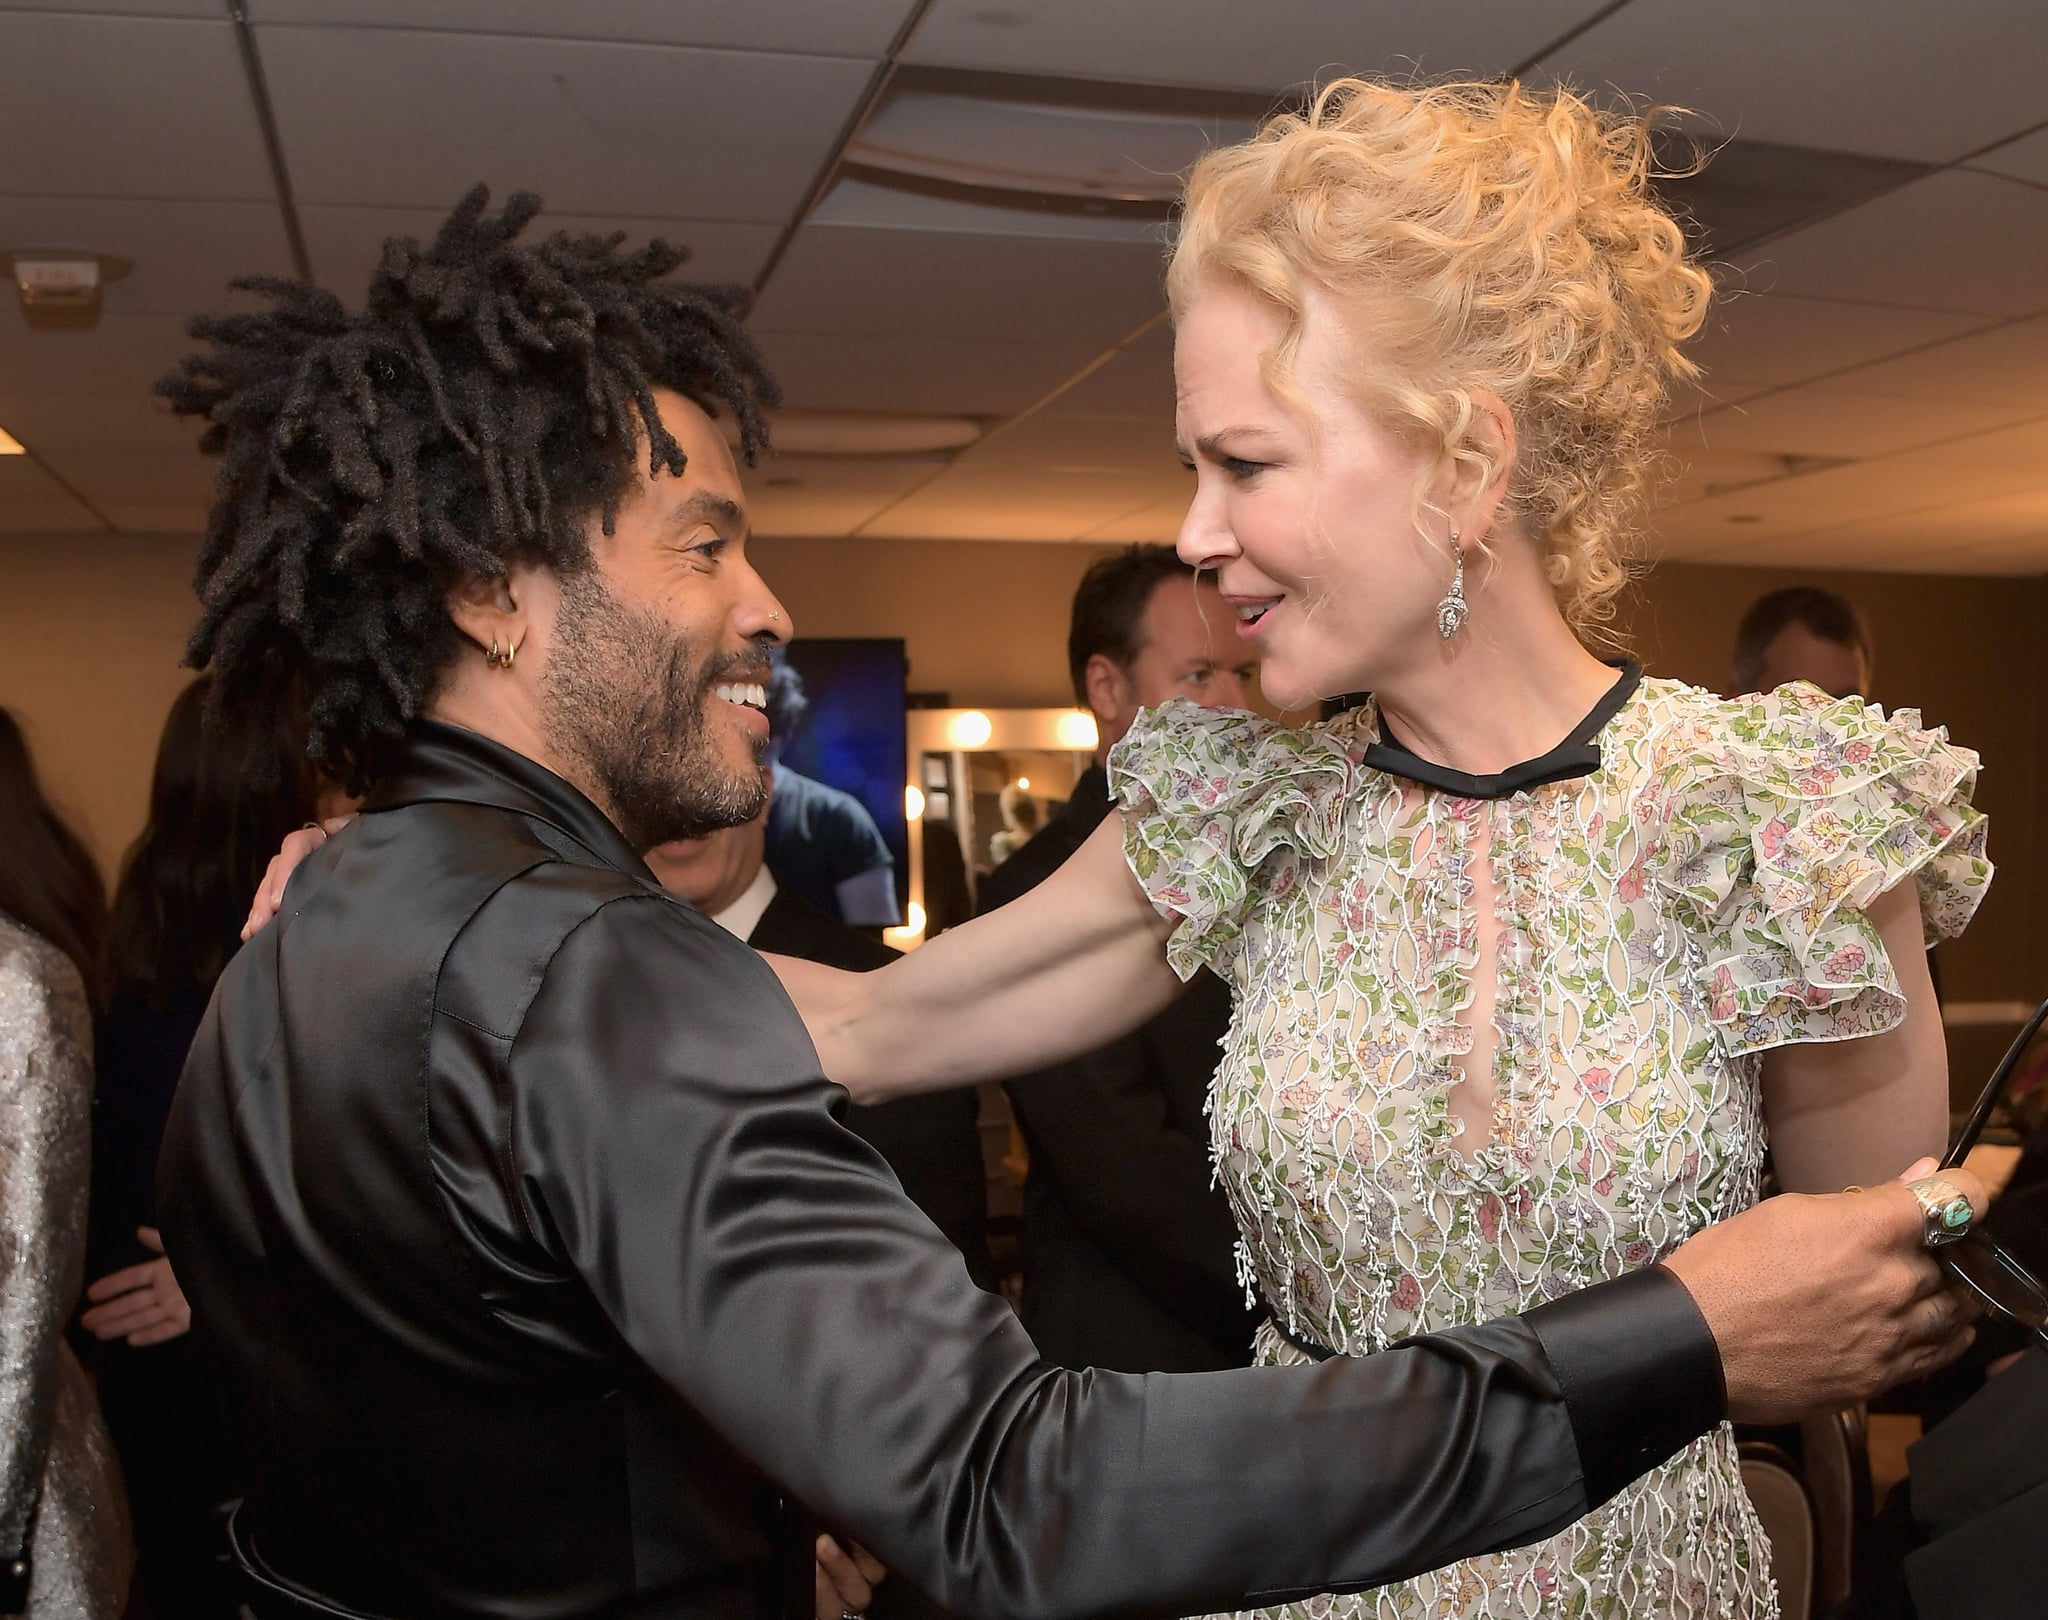 WEST HOLLYWOOD, CA - NOVEMBER 06:  Recording artist Lenny Kravitz (L) and actress Nicole Kidman  pose in the green room during the Hollywood Film Awards on November 6, 2016 in West Hollywood, California.  (Photo by Charley Gallay/Getty Images for dcp)